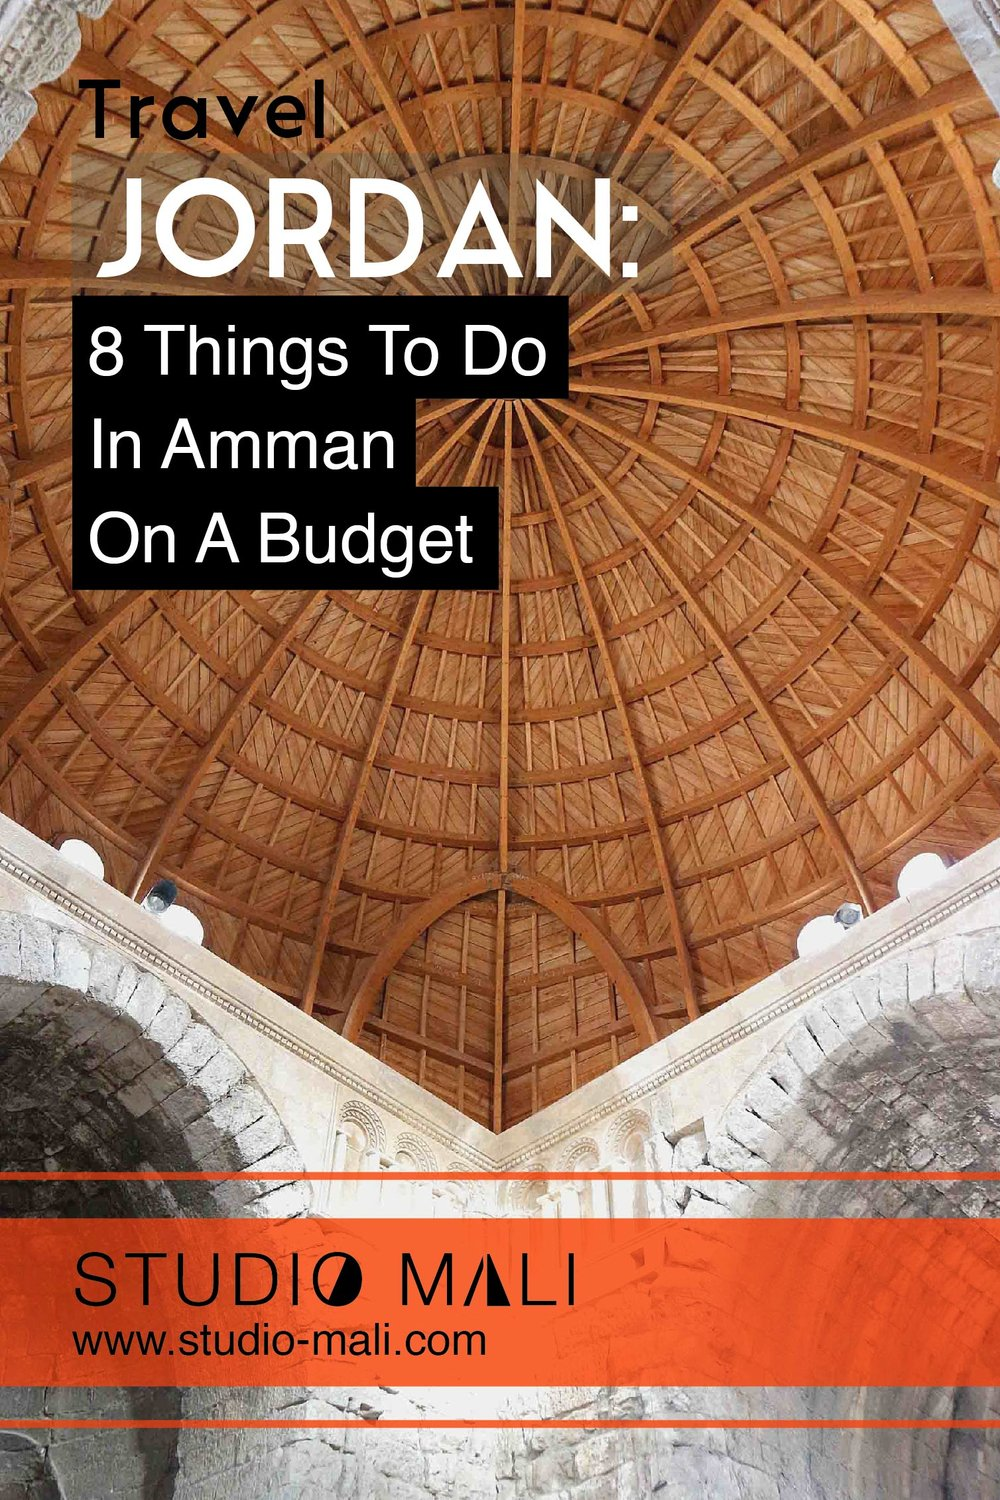 Jordan - 8 Things To Do In Amman On A Budget, by Studio Mali